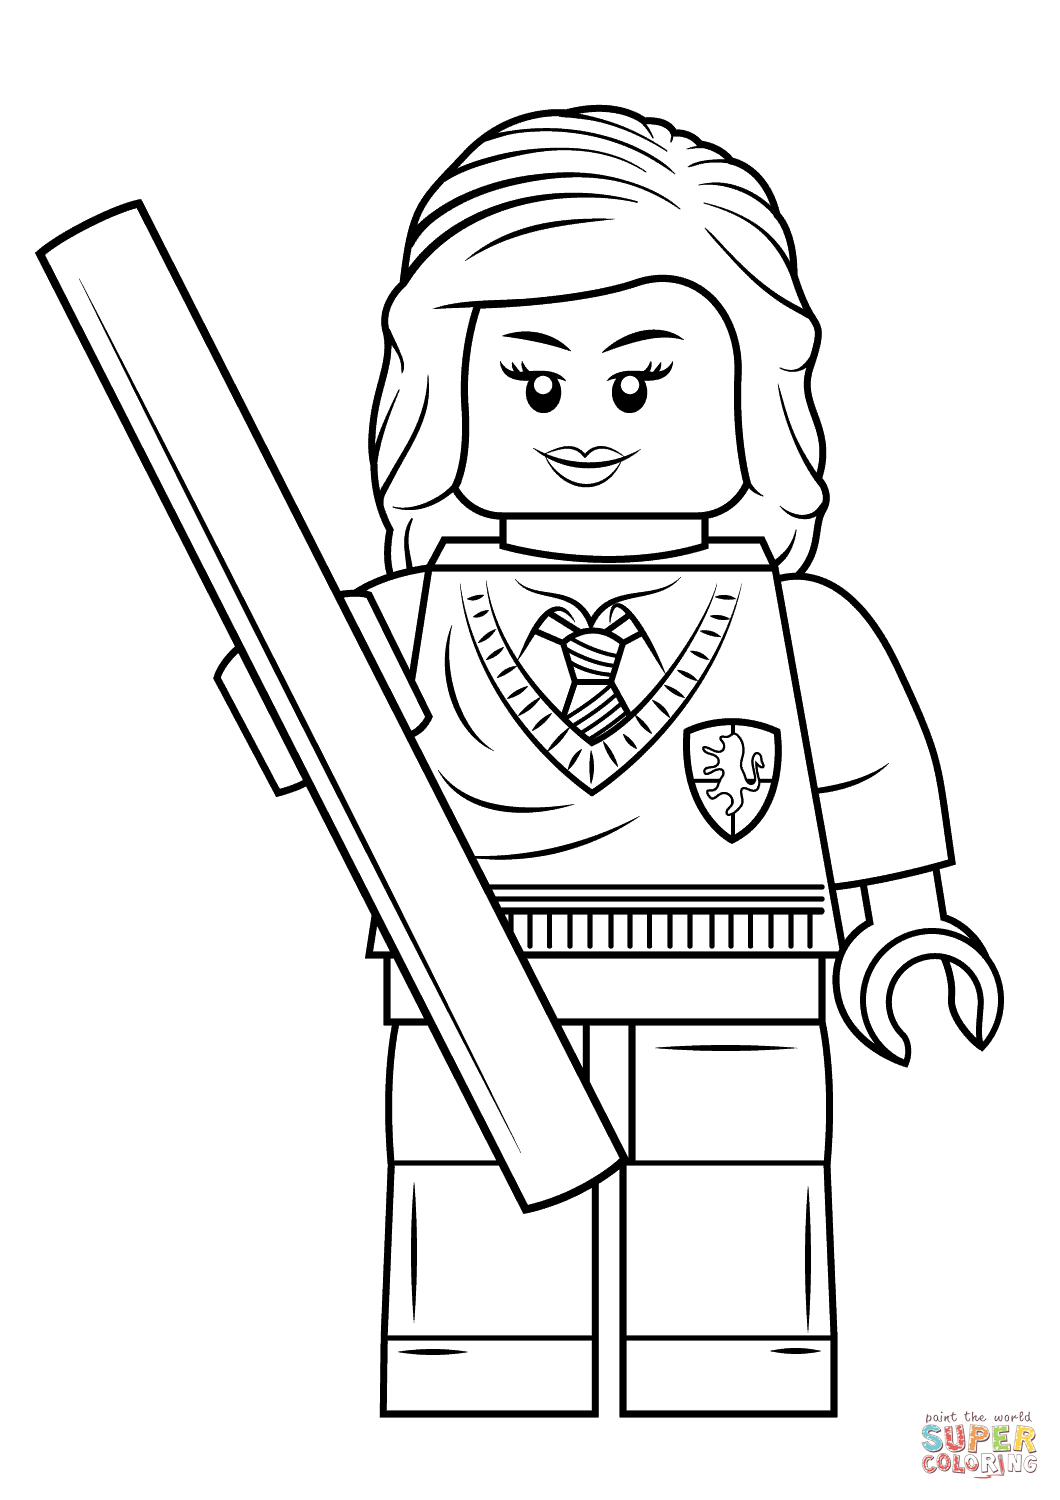 1060x1500 Advice Easy Harry Potter Coloring Pages Lego H